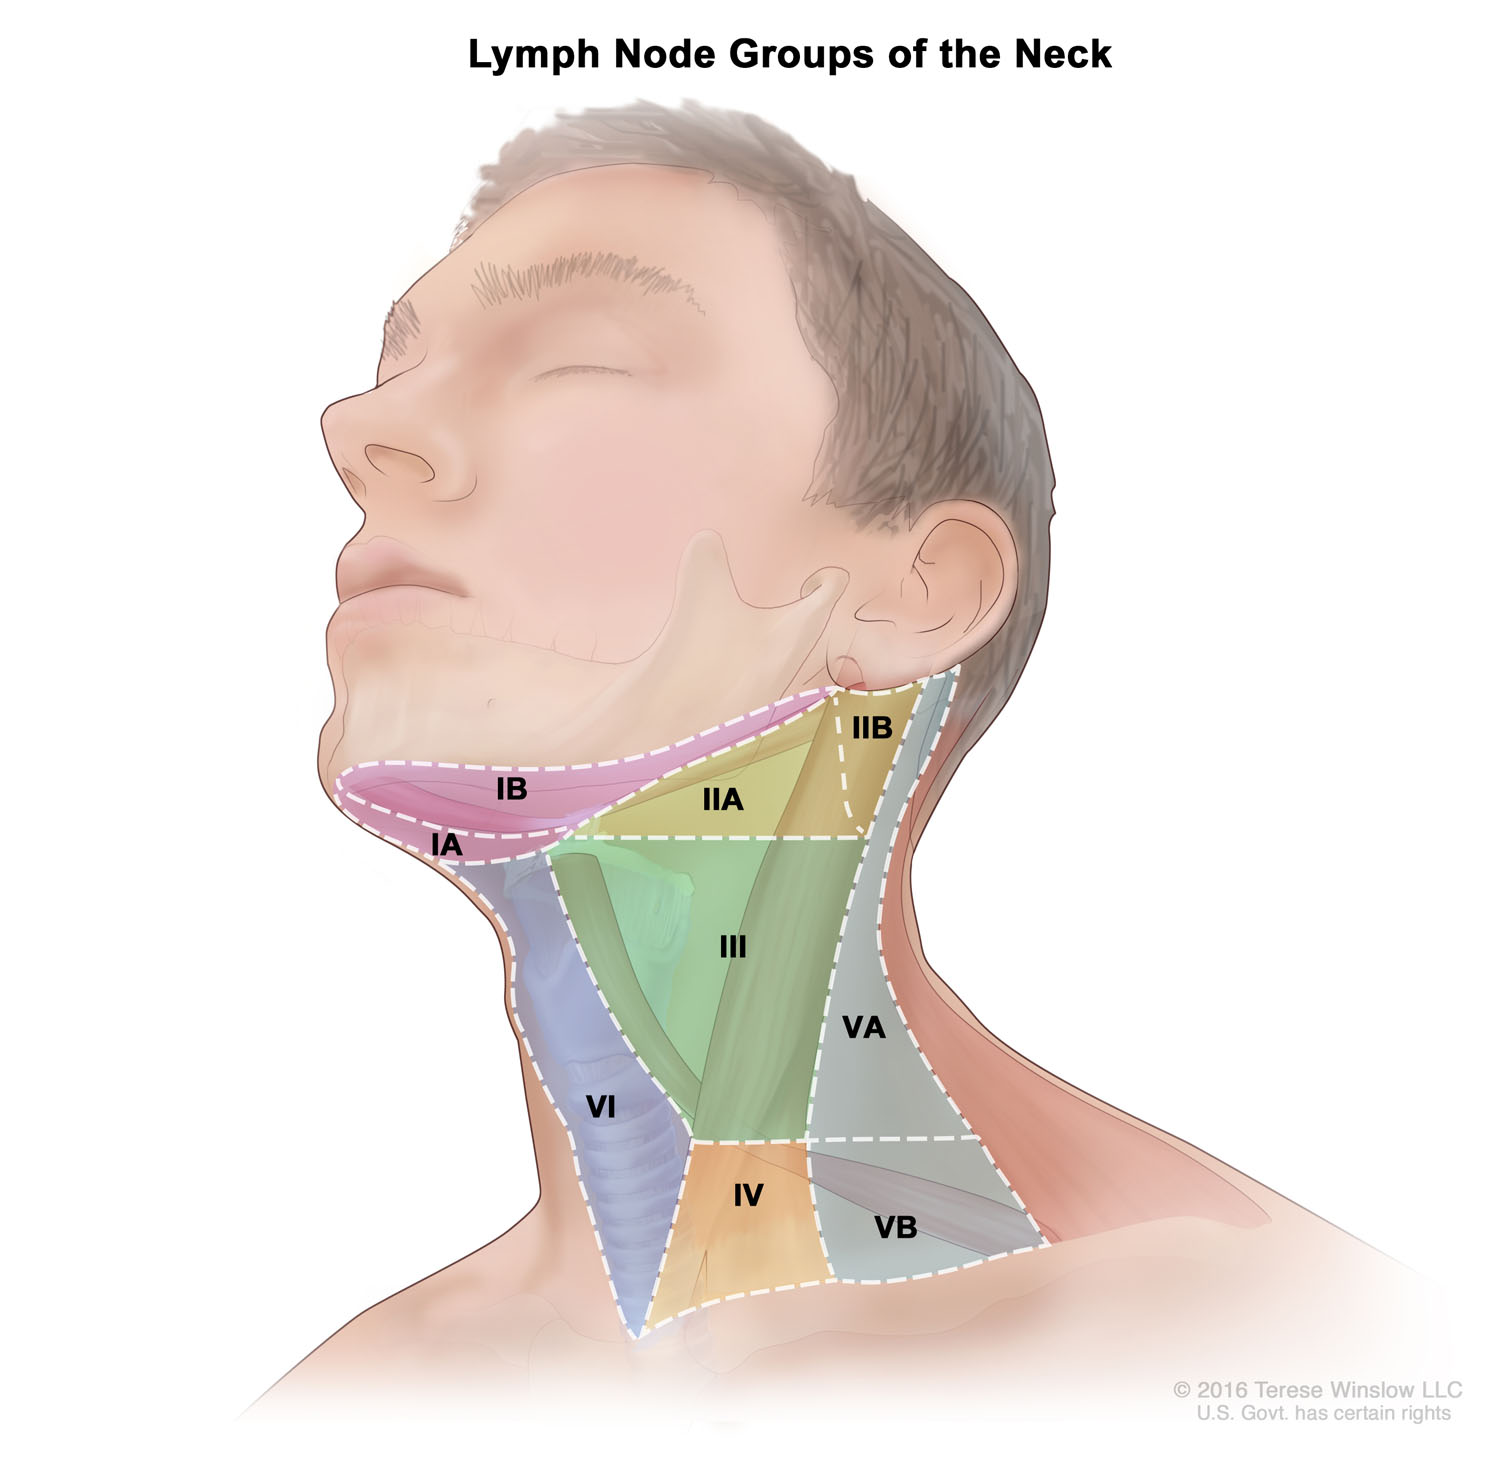 lymph-node-groups-neck.jpg